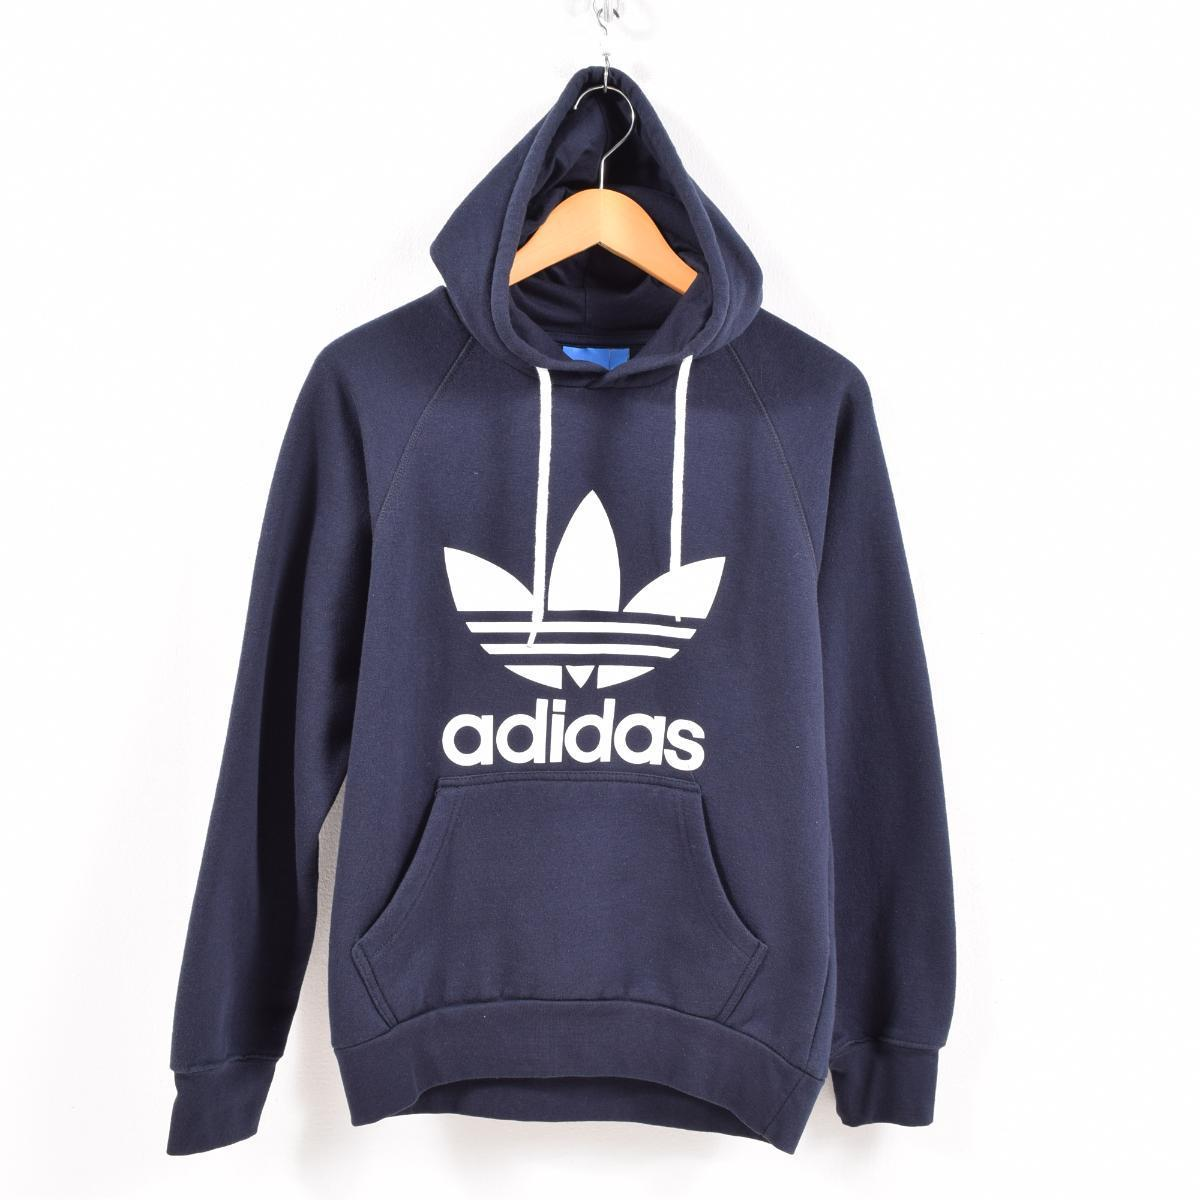 adidas Parkas for Men for Sale | Shop New & Used | eBay